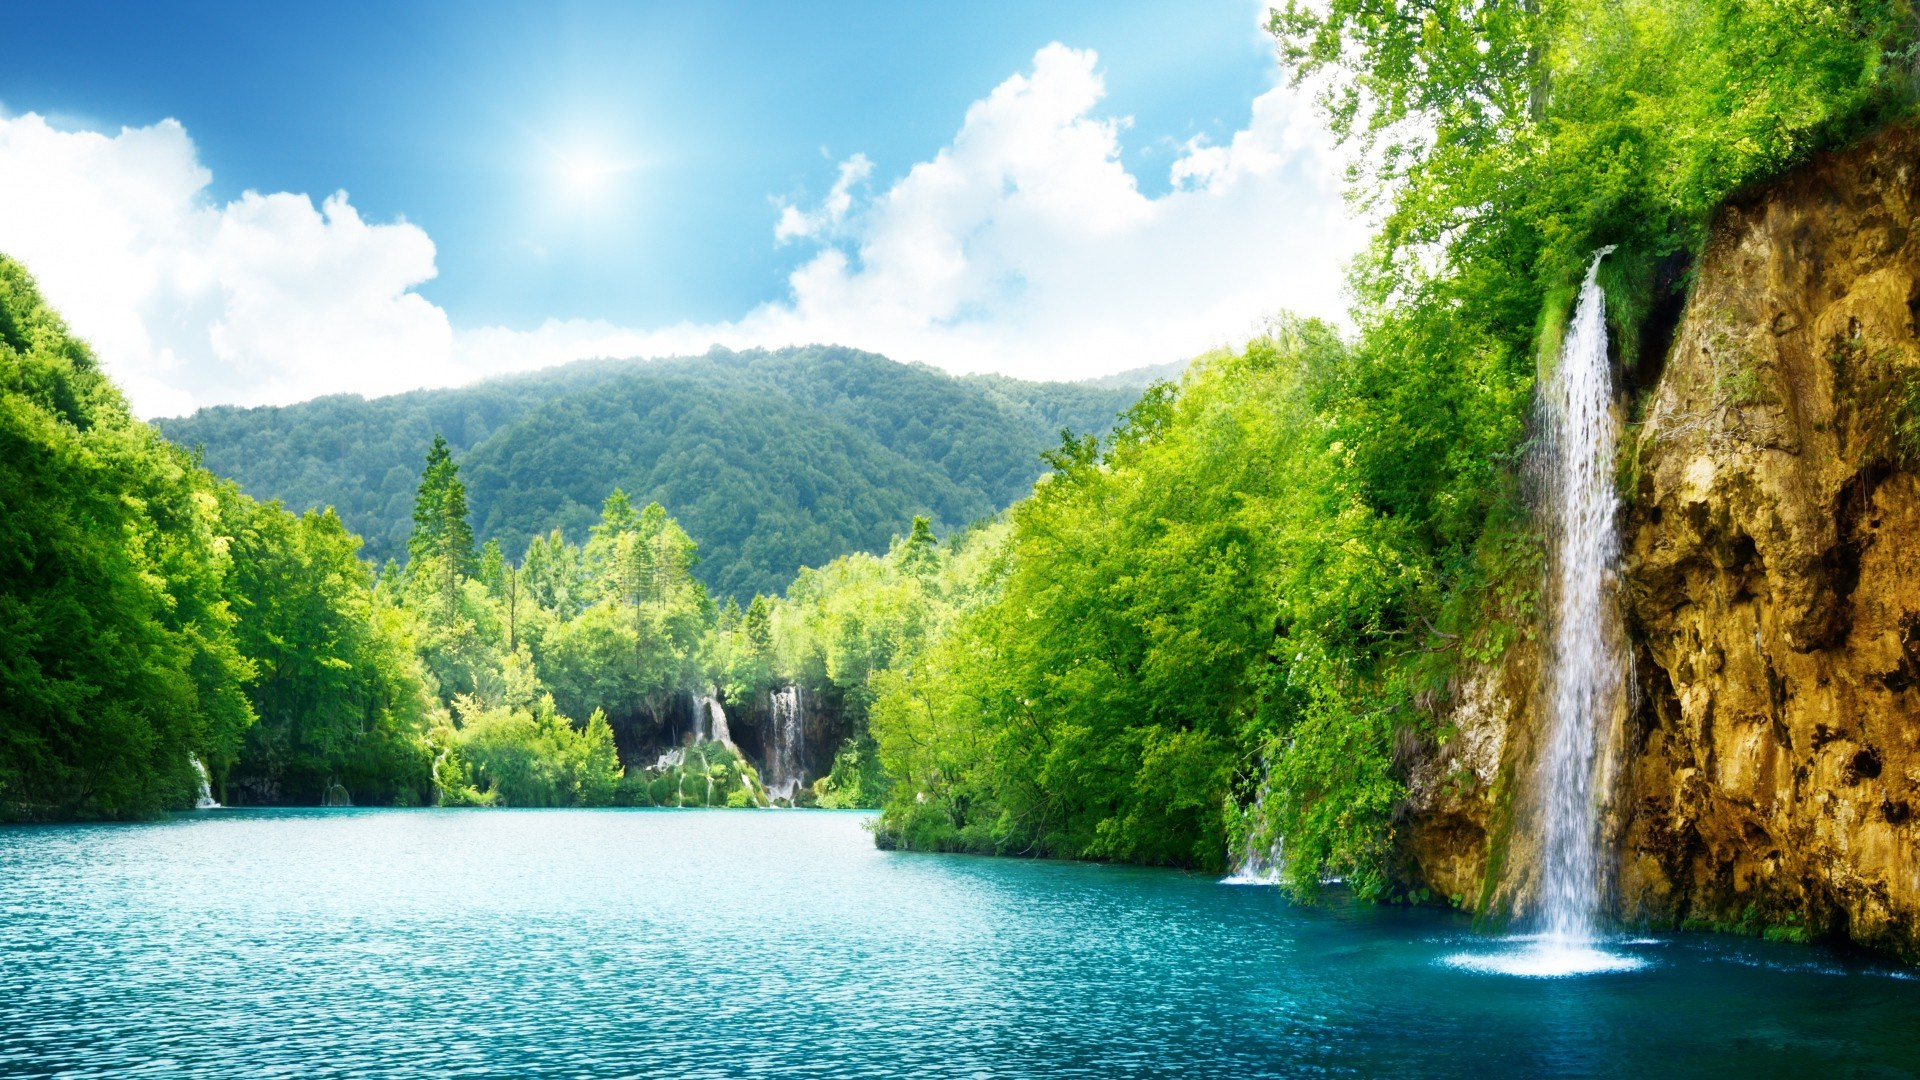 Natural Waterfall Summer Lake Trees Full HD Desktop 1920x1080